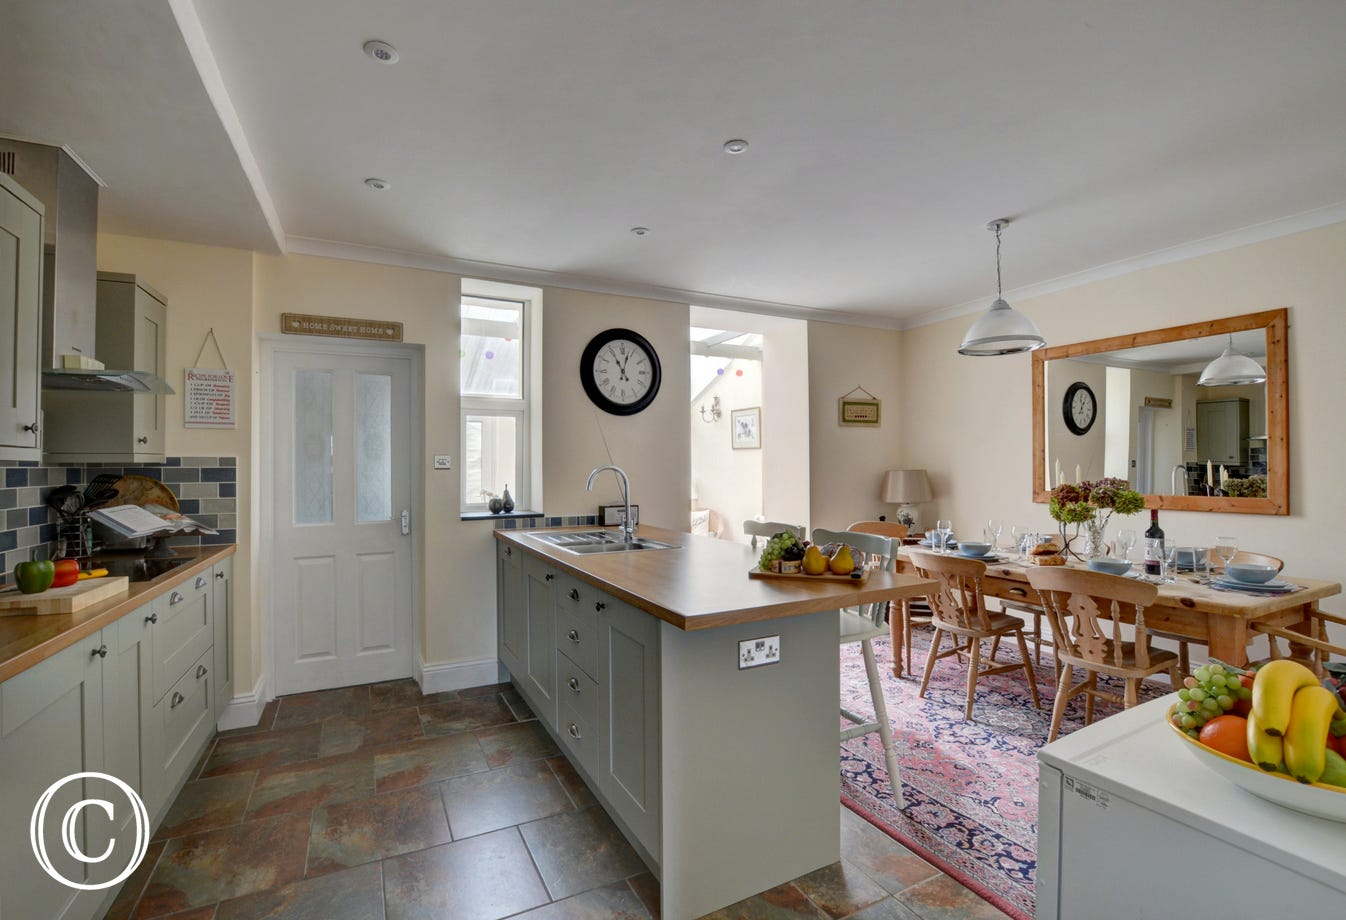 Wonderful open plan kitchen and dining area, with access to conservatory